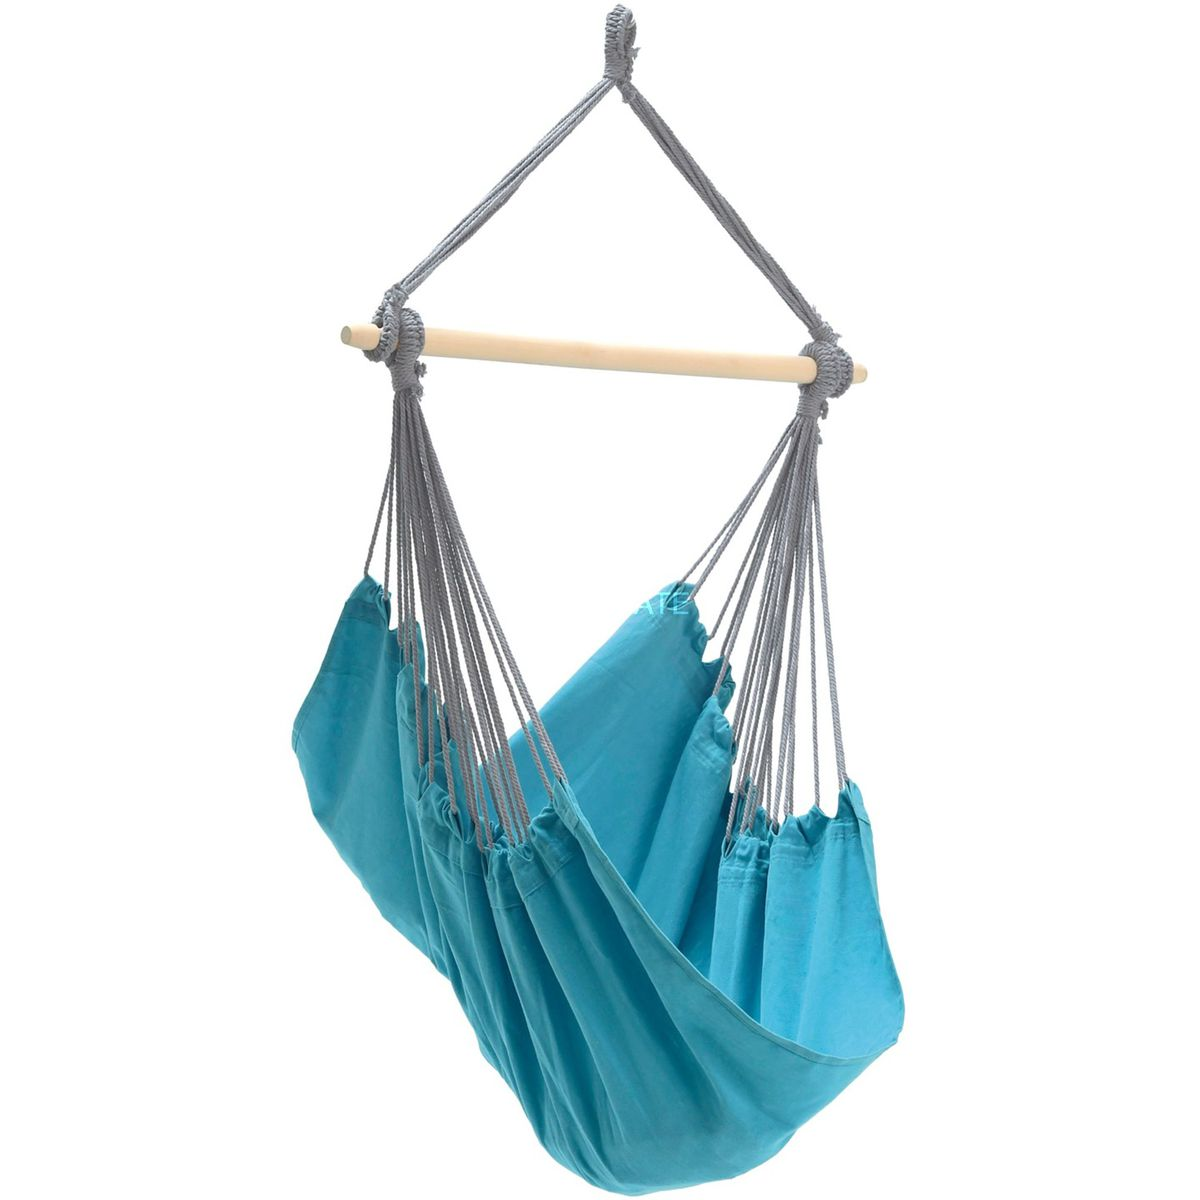 Amazonas Panama Aqua Blue Hanging Chair - Ruby's Garden Boutique